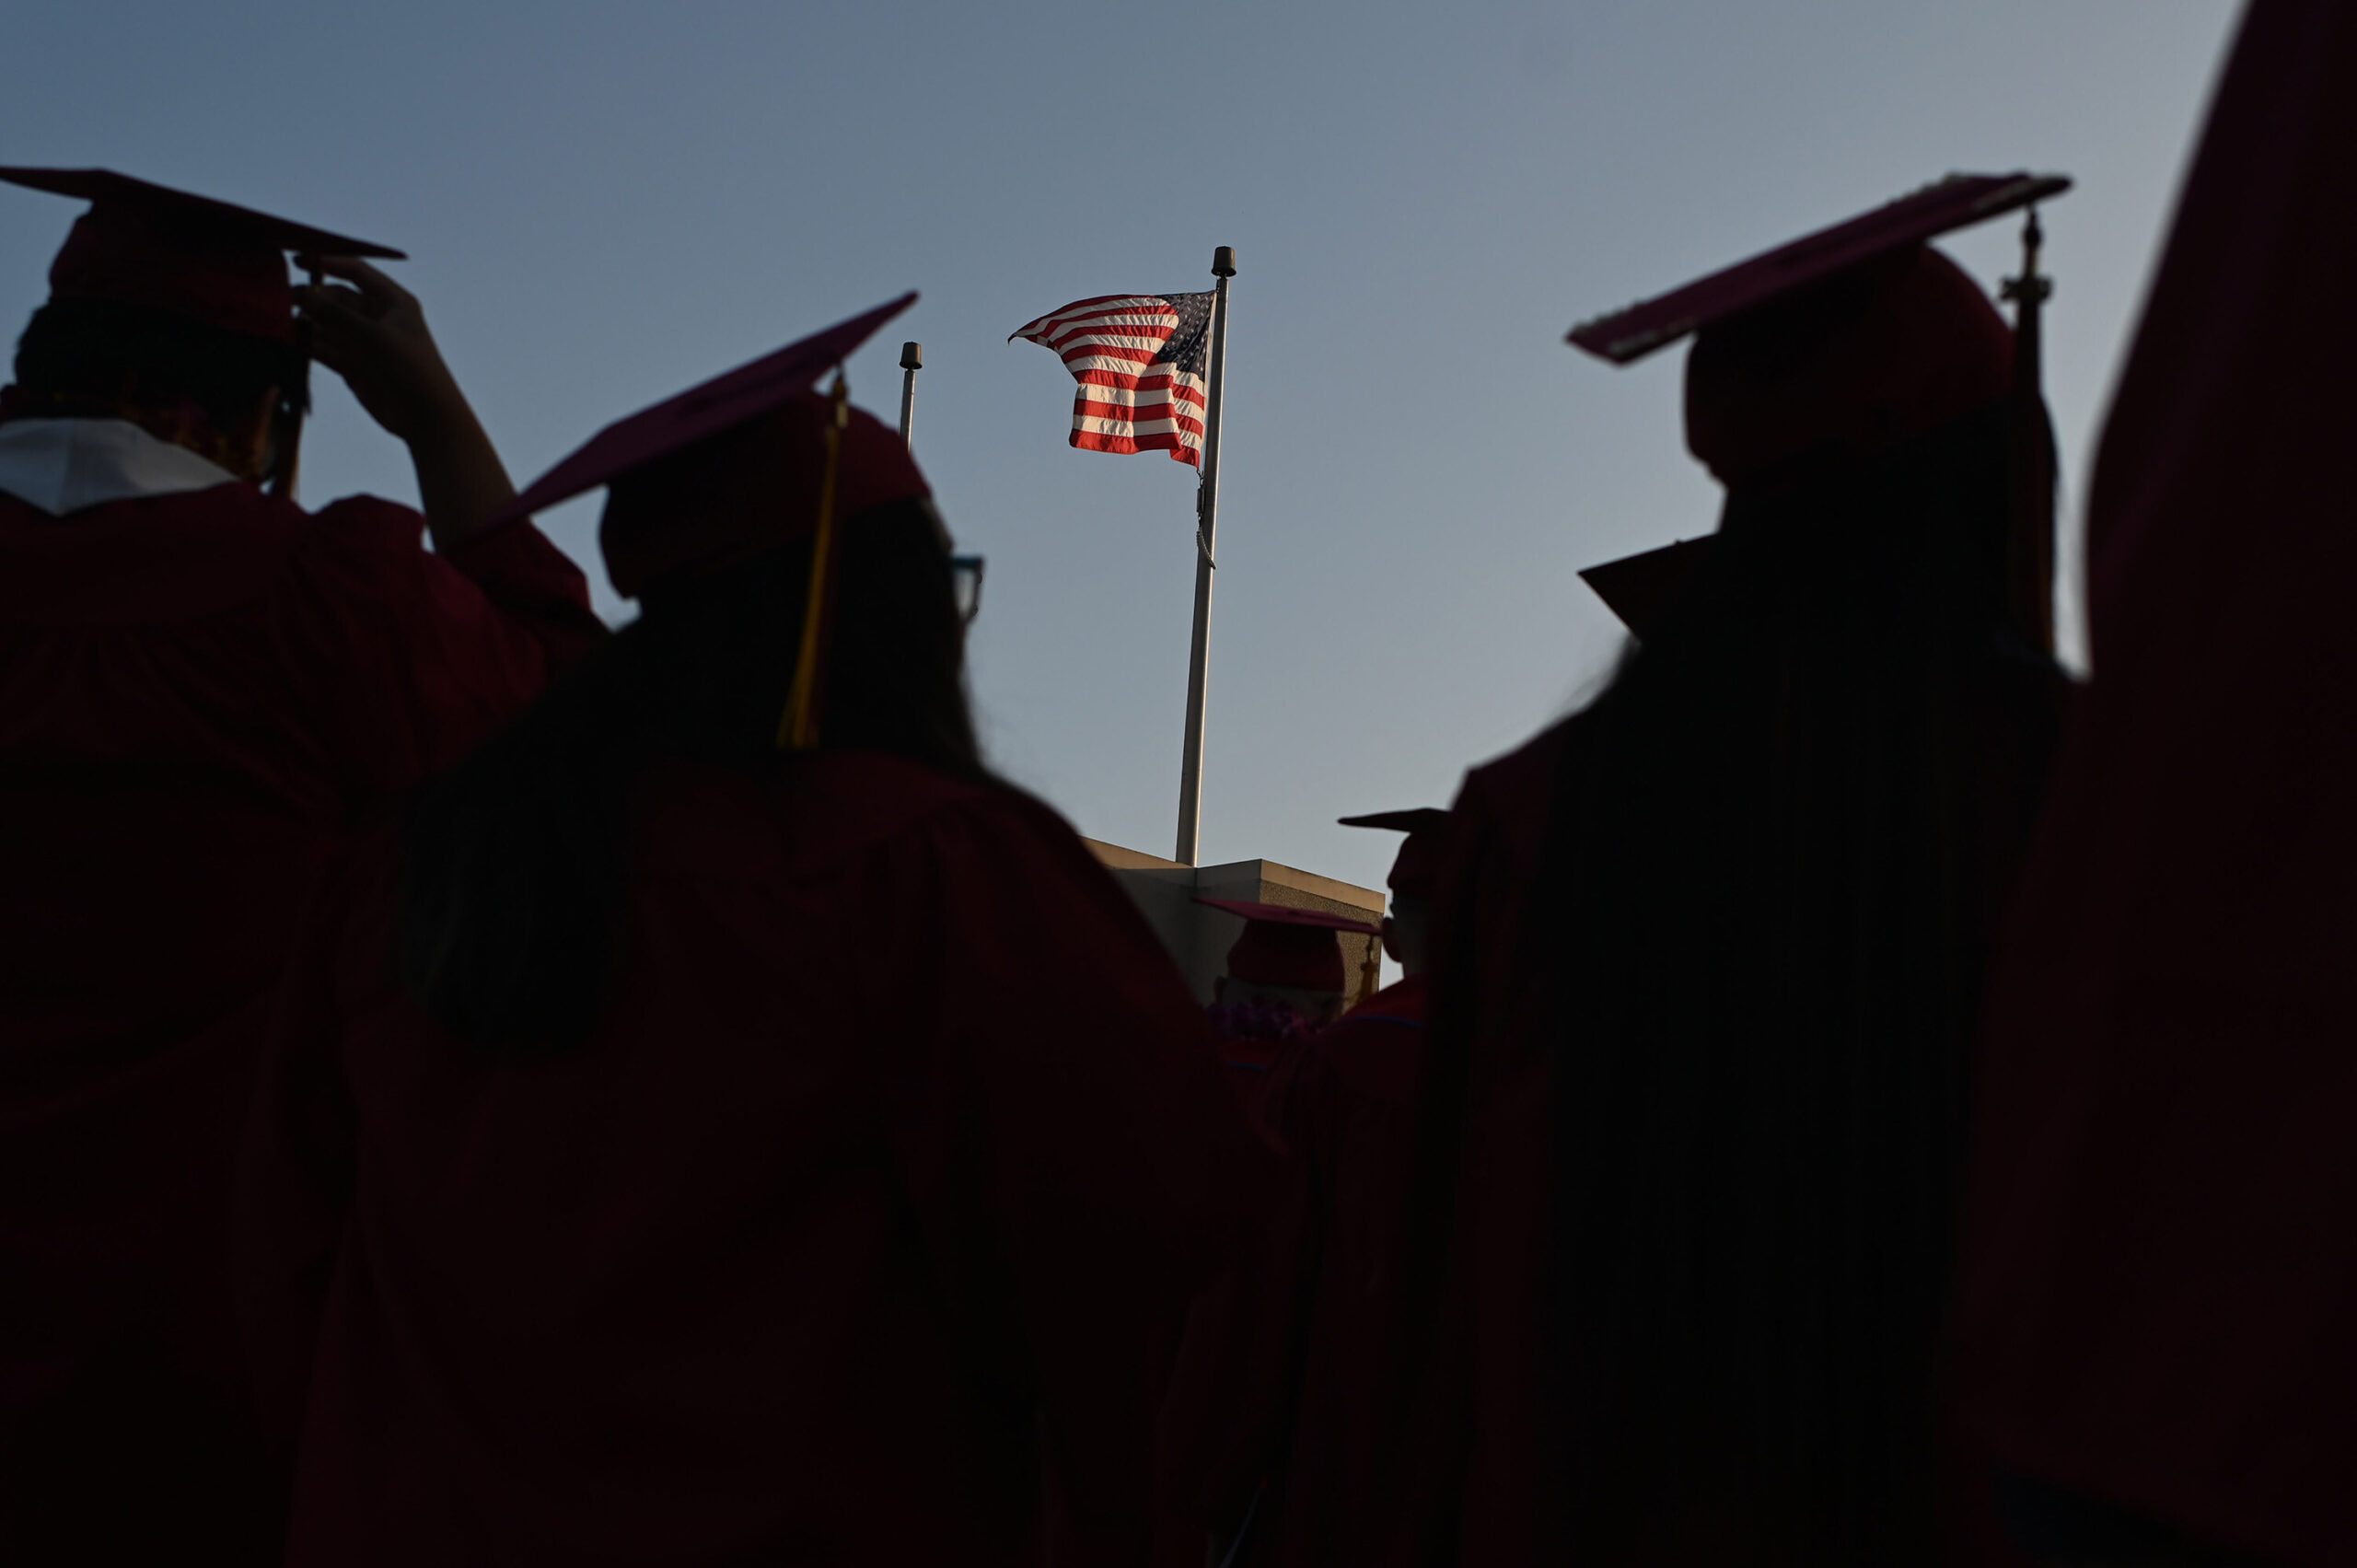 <i>ROBYN BECK/AFP/Getty Images</i><br/>The US Department of Education recently announced significant changes to a federal student loan forgiveness program. Students are seen graduating from Pasadena City College in June 2019.